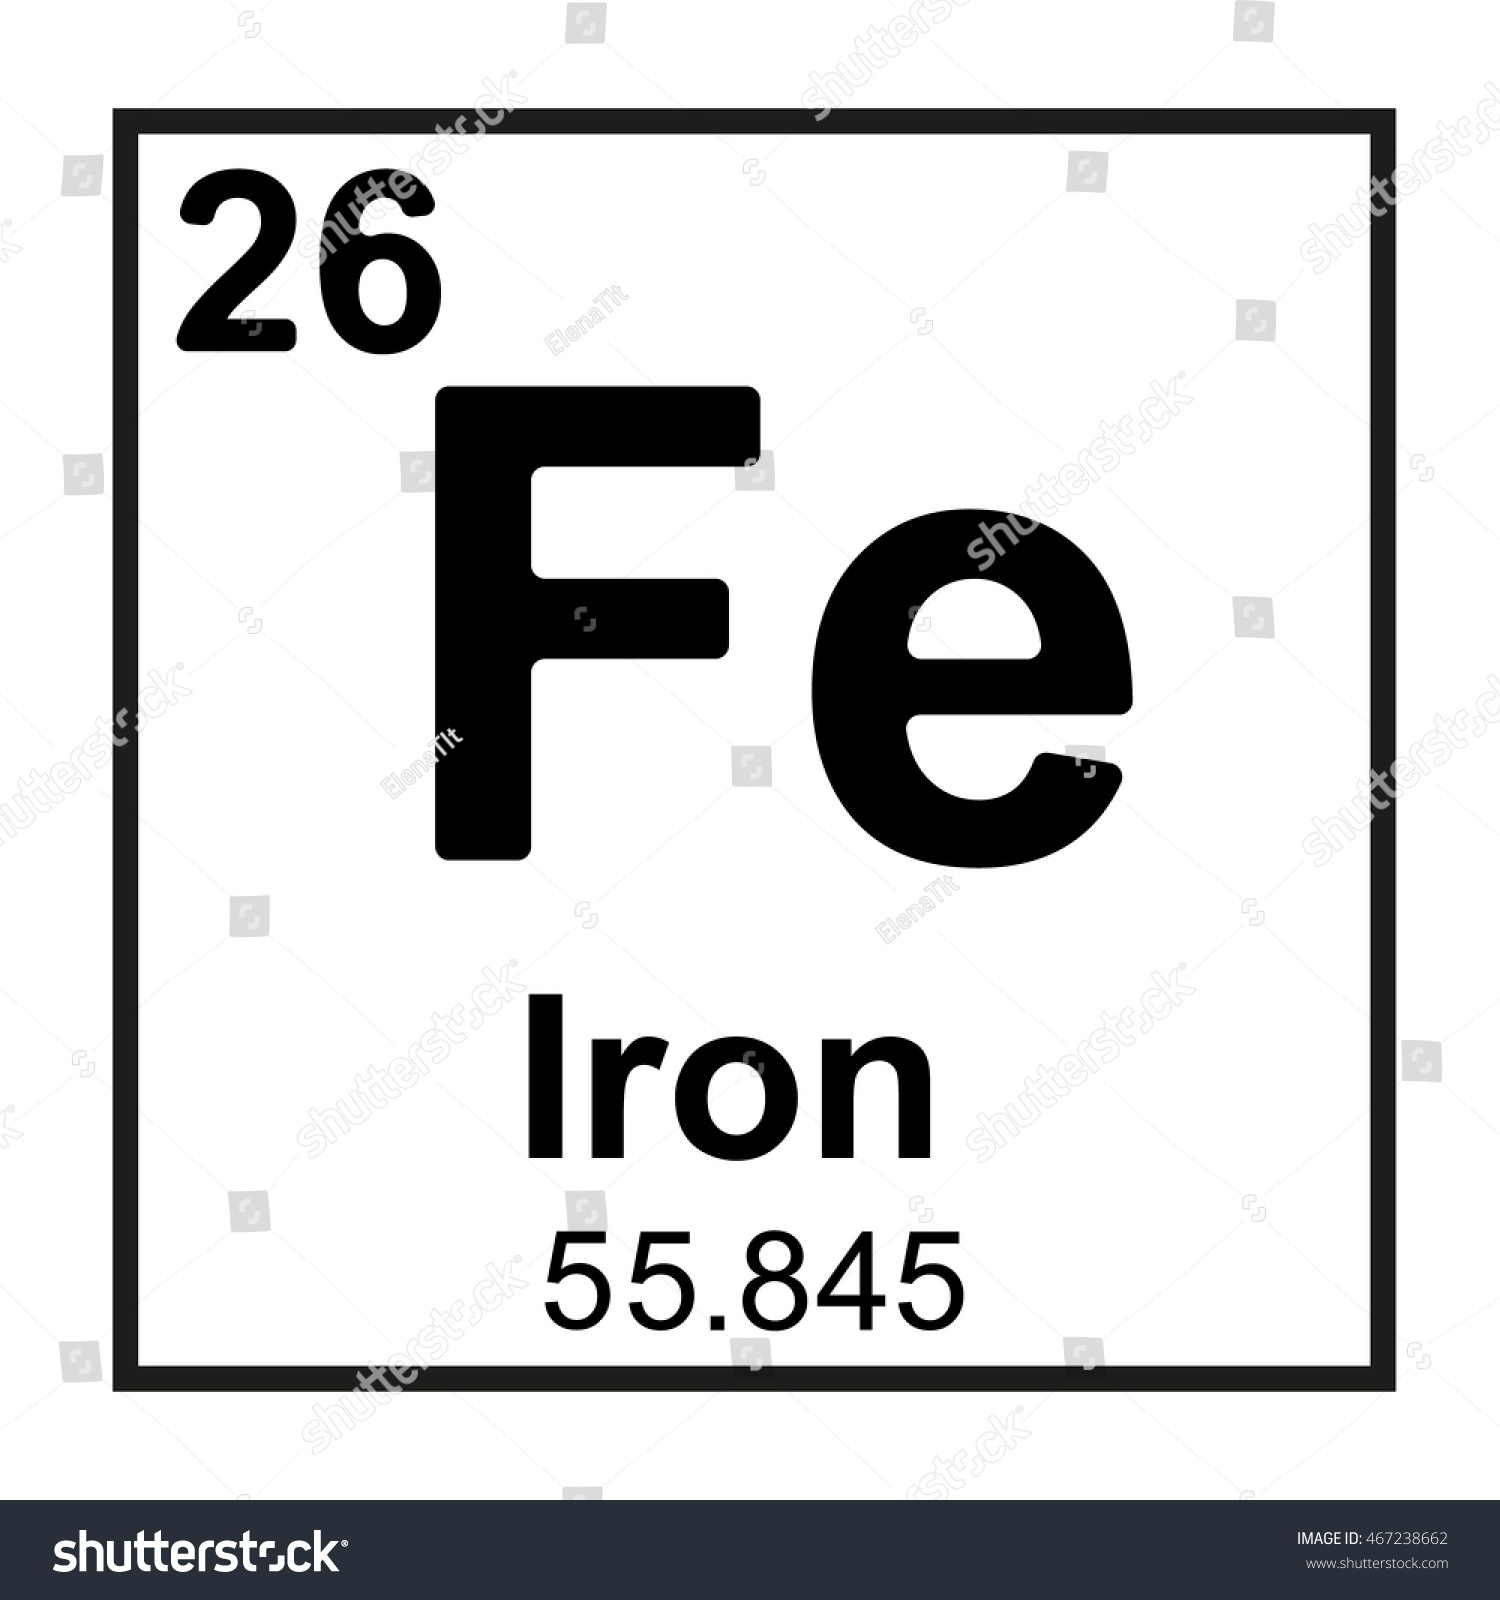 Periodic table element iron stock vector 467238662 shutterstock periodic table element iron gamestrikefo Gallery